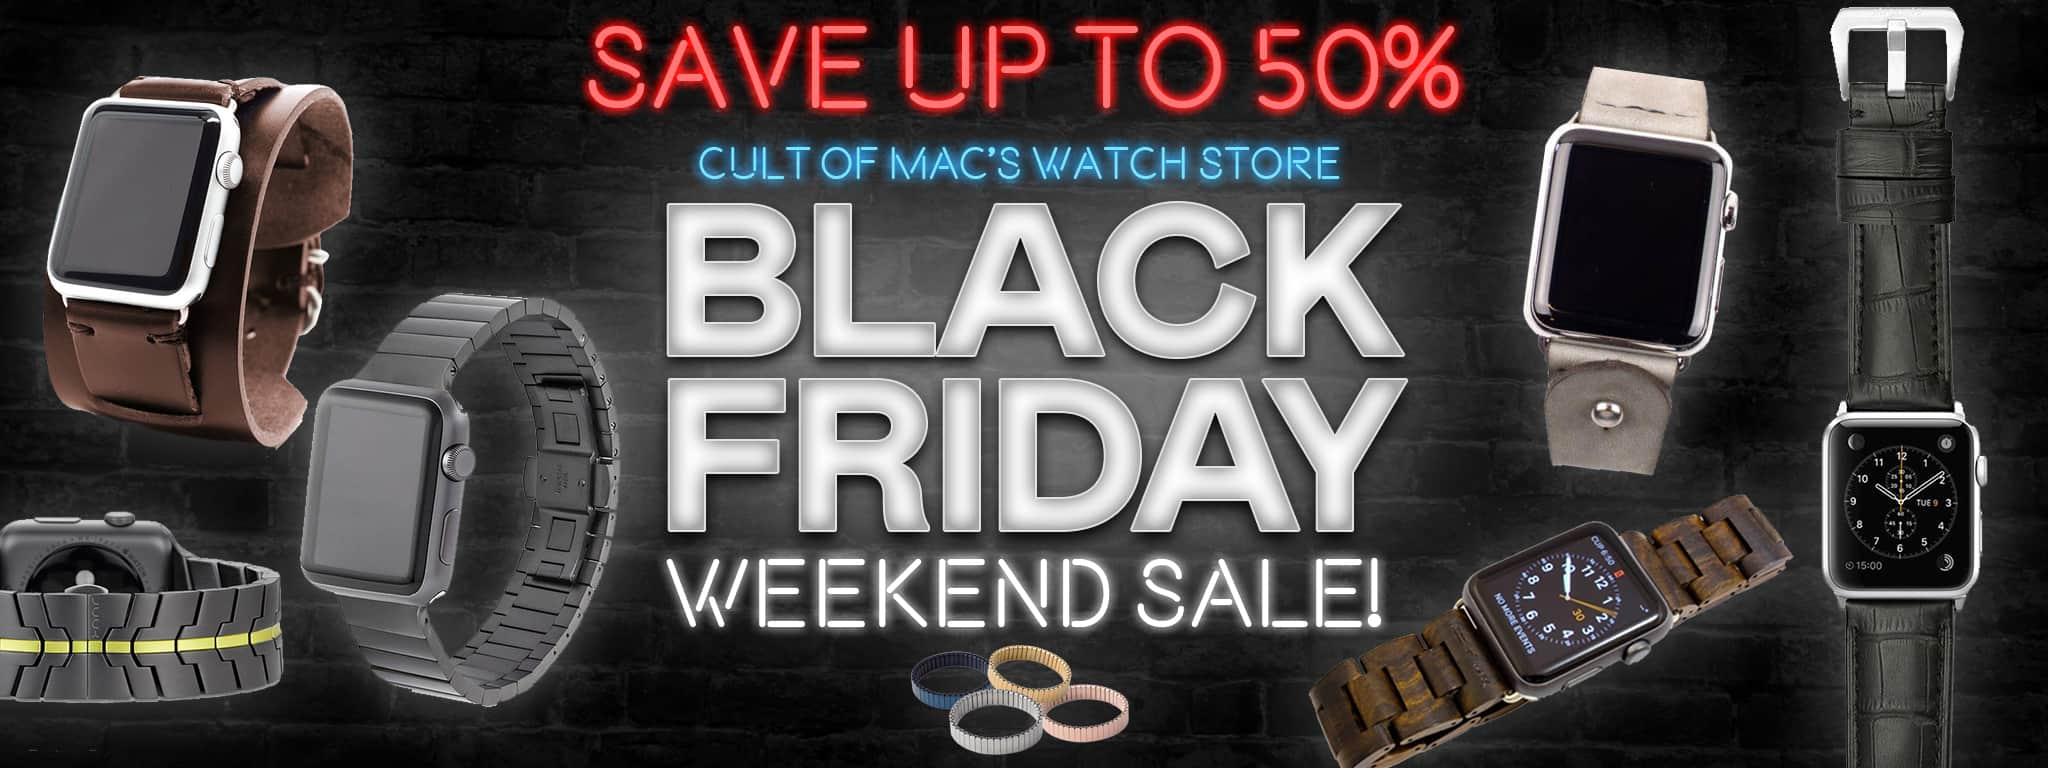 black friday Apple Watch bands sale